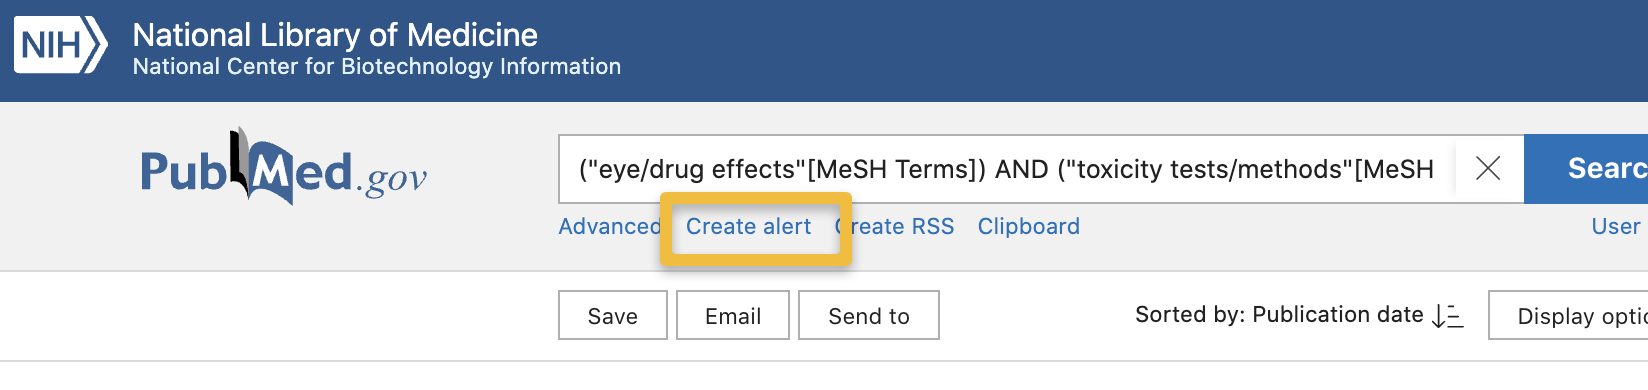 "Screencapture of Pubmed page highlighting ""Create Alert"" link under main search bar"